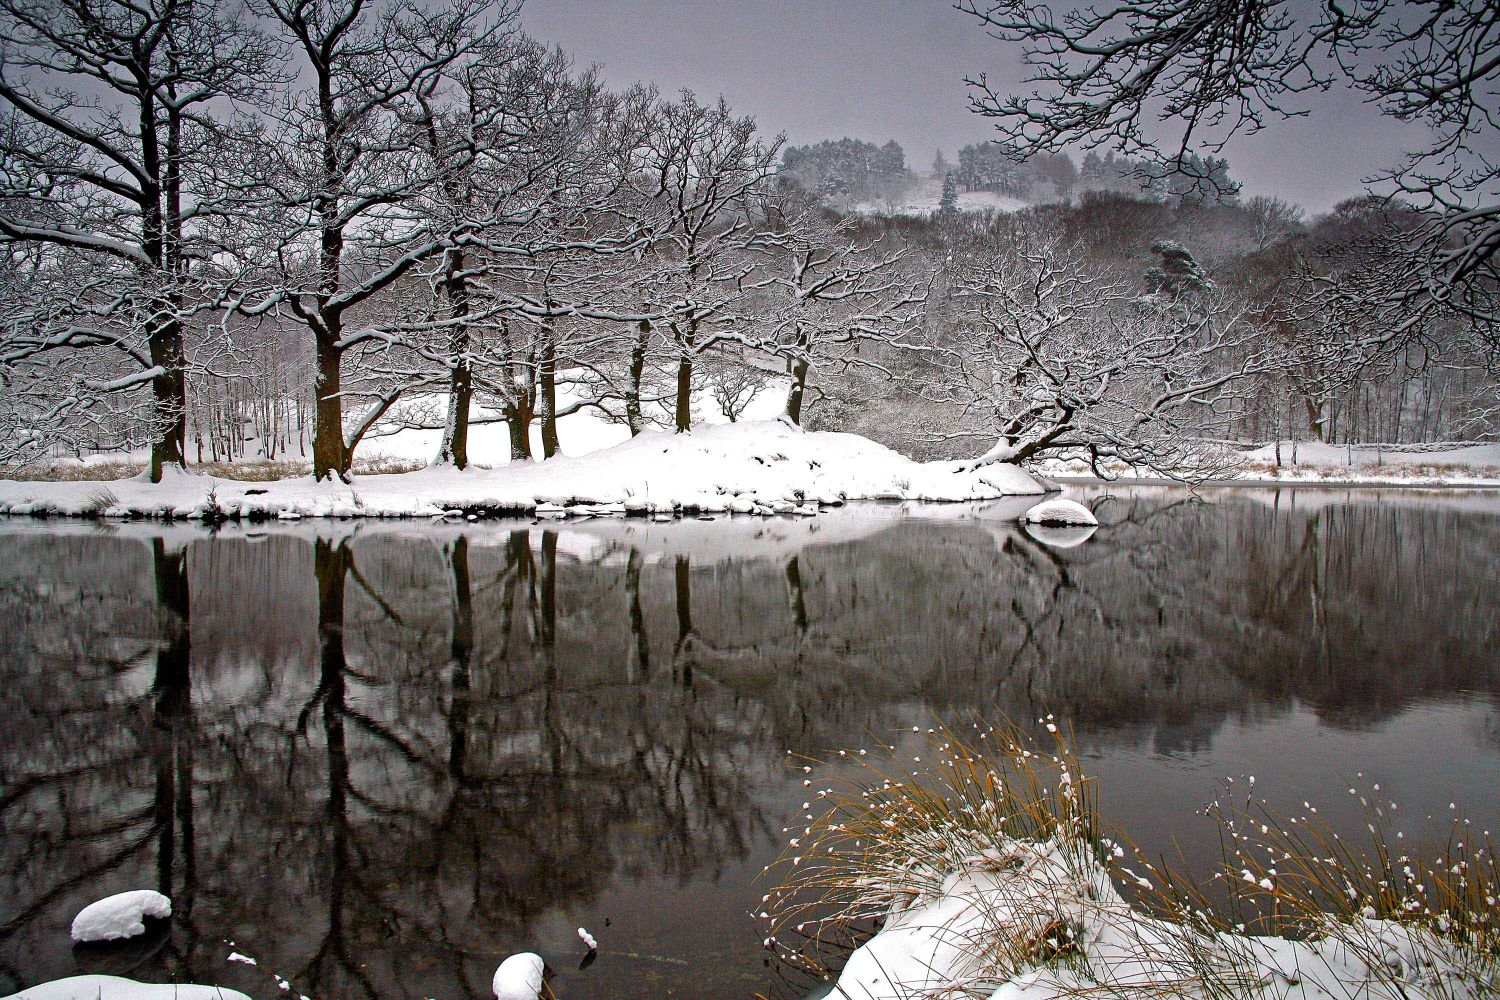 Spring Snow at Rydal Water